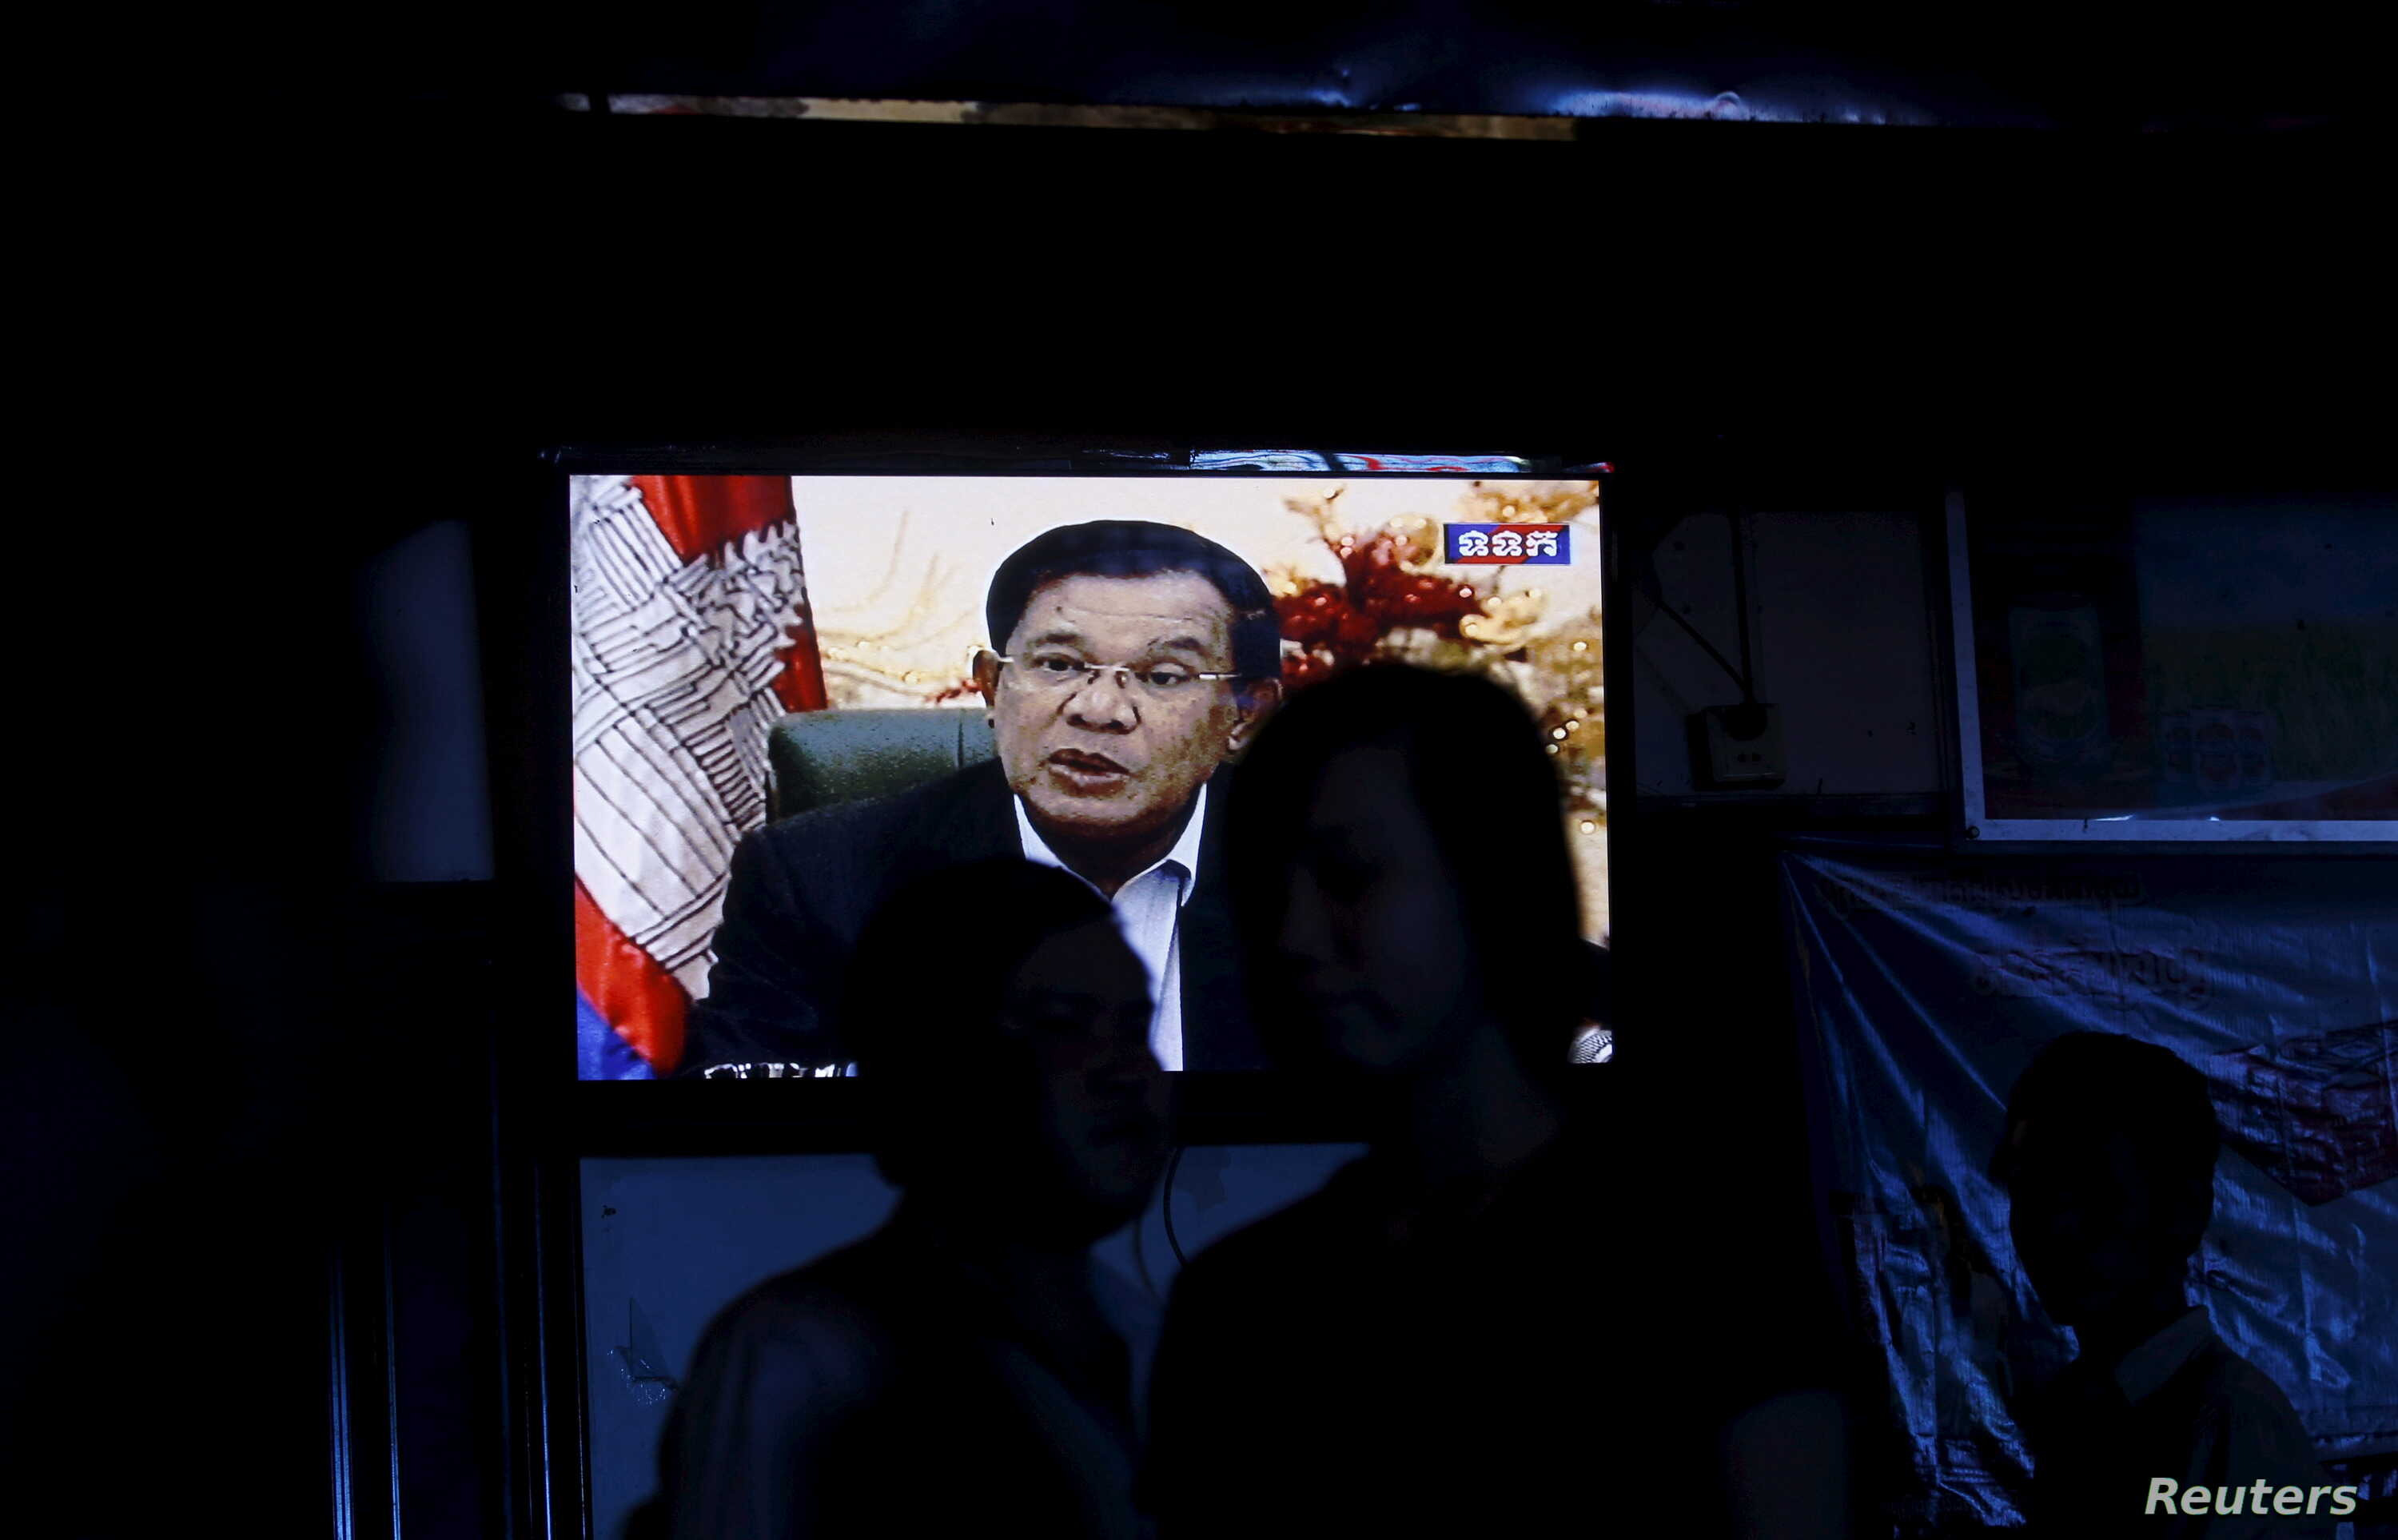 Cambodia's Prime Minister Hun Sen is seen on a television as he delivers a speech, at a restaurant in central Phnom Penh, Oct. 28, 2015.